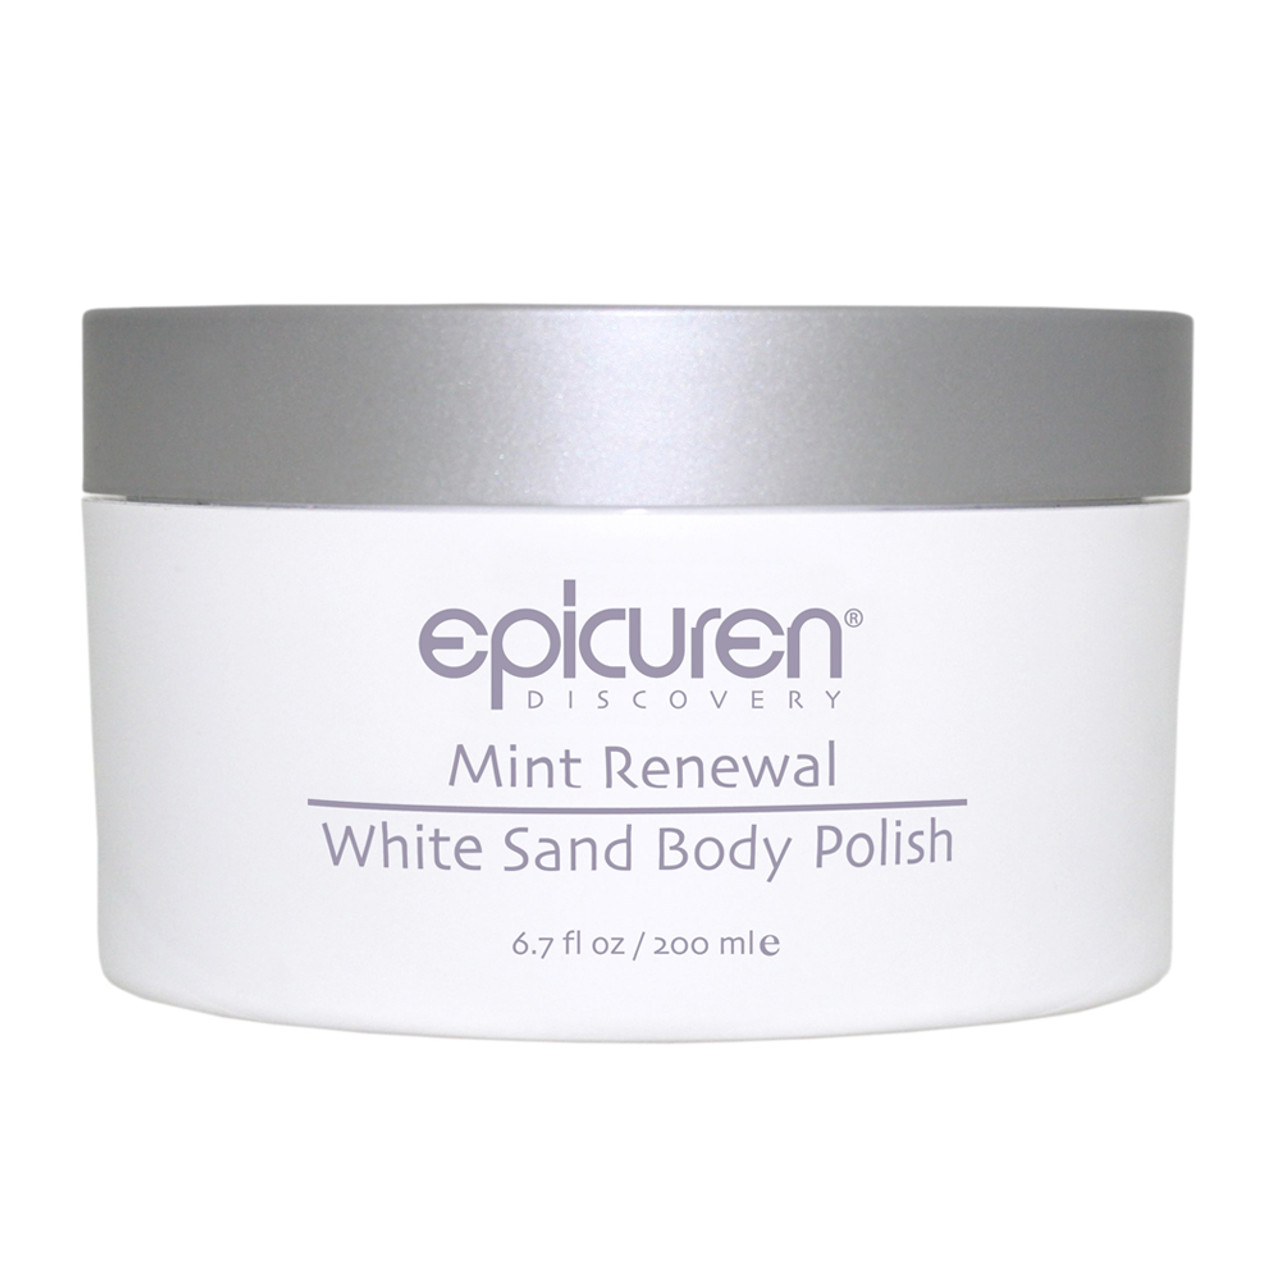 epicuren Discovery Mint Renewal White Sand Body Polish